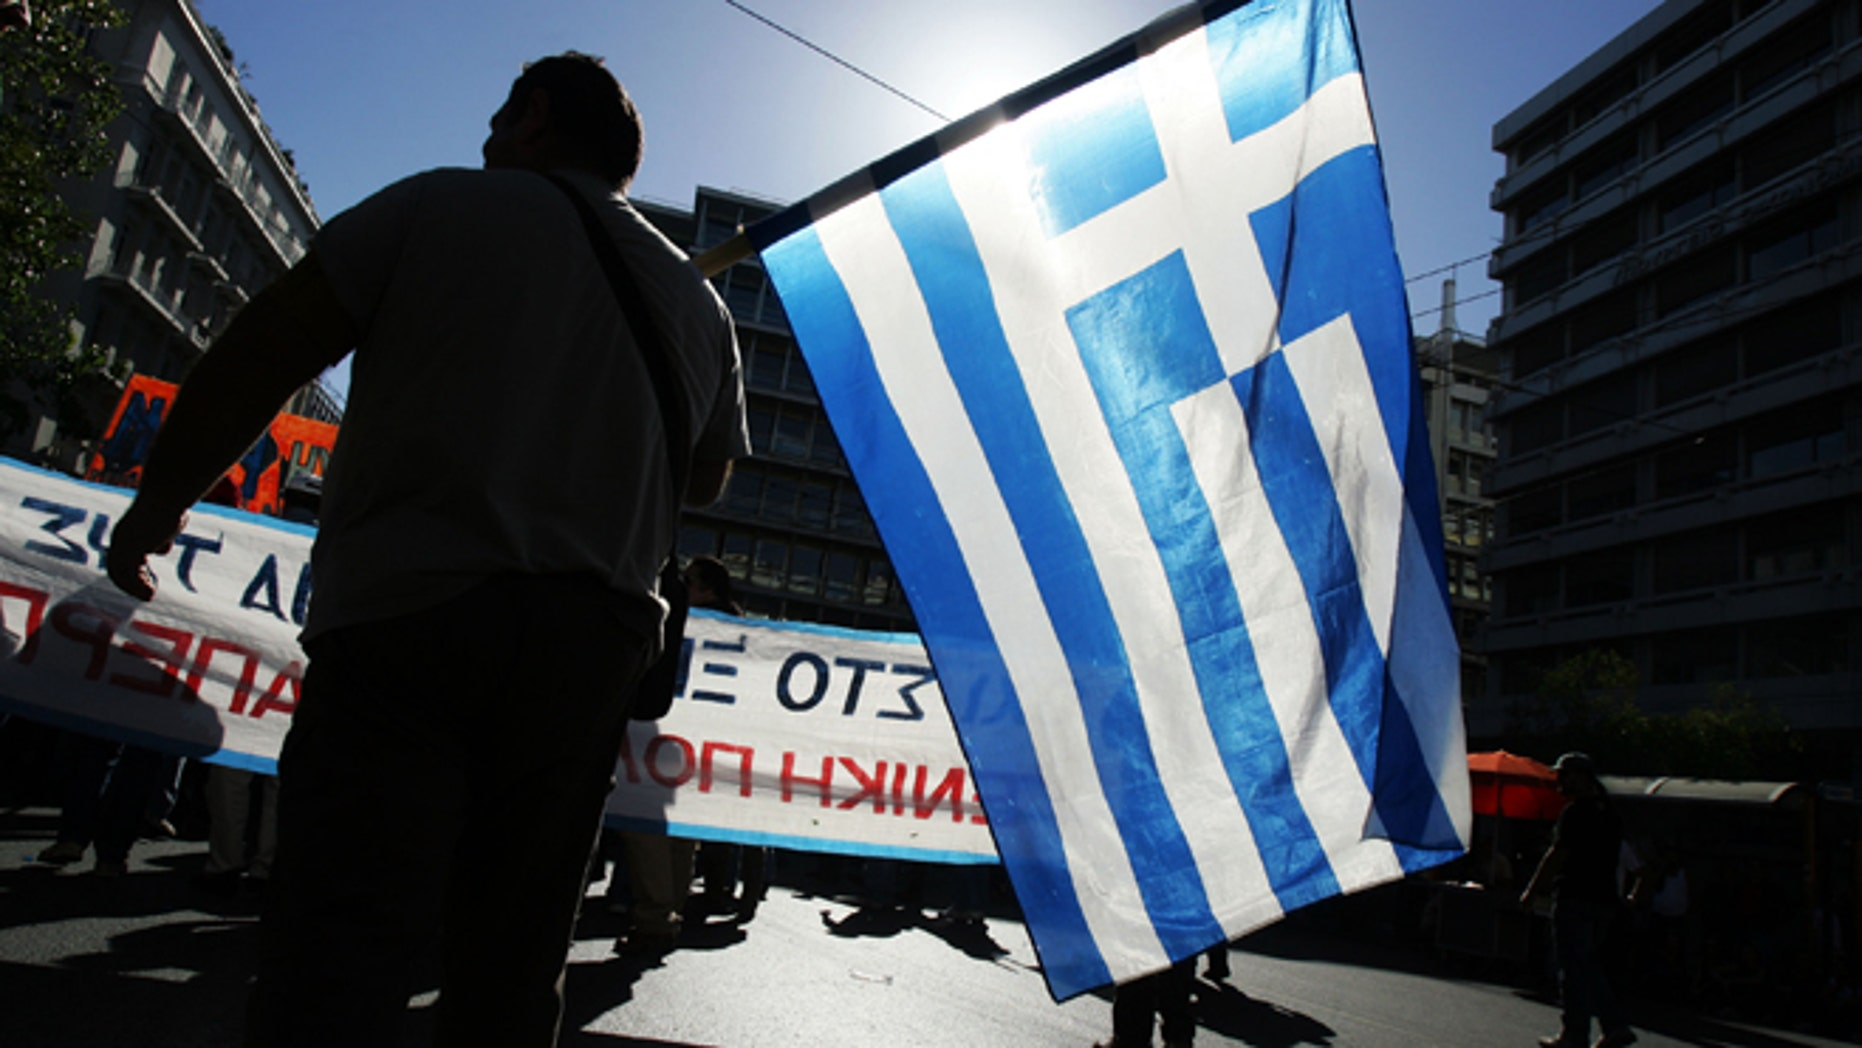 ATHENS, GREECE - NOVEMBER 6:  Protesters march outside parliament during a rally on November 6, 2012 in Athens, Greece. Thousands of Greeks are protesting against further austerity measures as a two-day general strike begins ahead of a crucial Parliamentary vote for emergency cuts and tax increases.  (Photo Milos Bicanski/Getty Images)